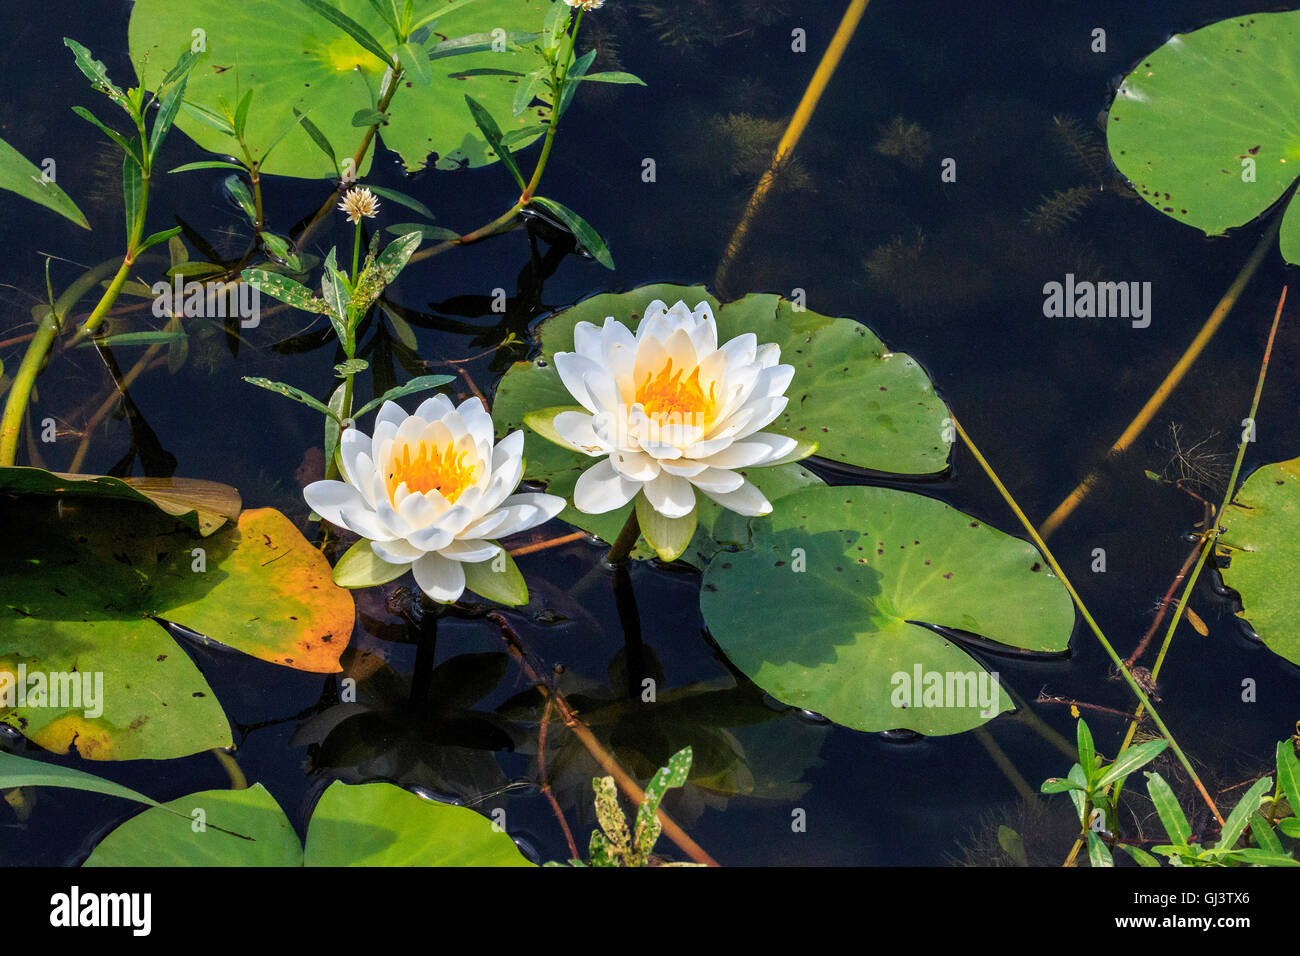 American Lotus Flower Stock Photos American Lotus Flower Stock